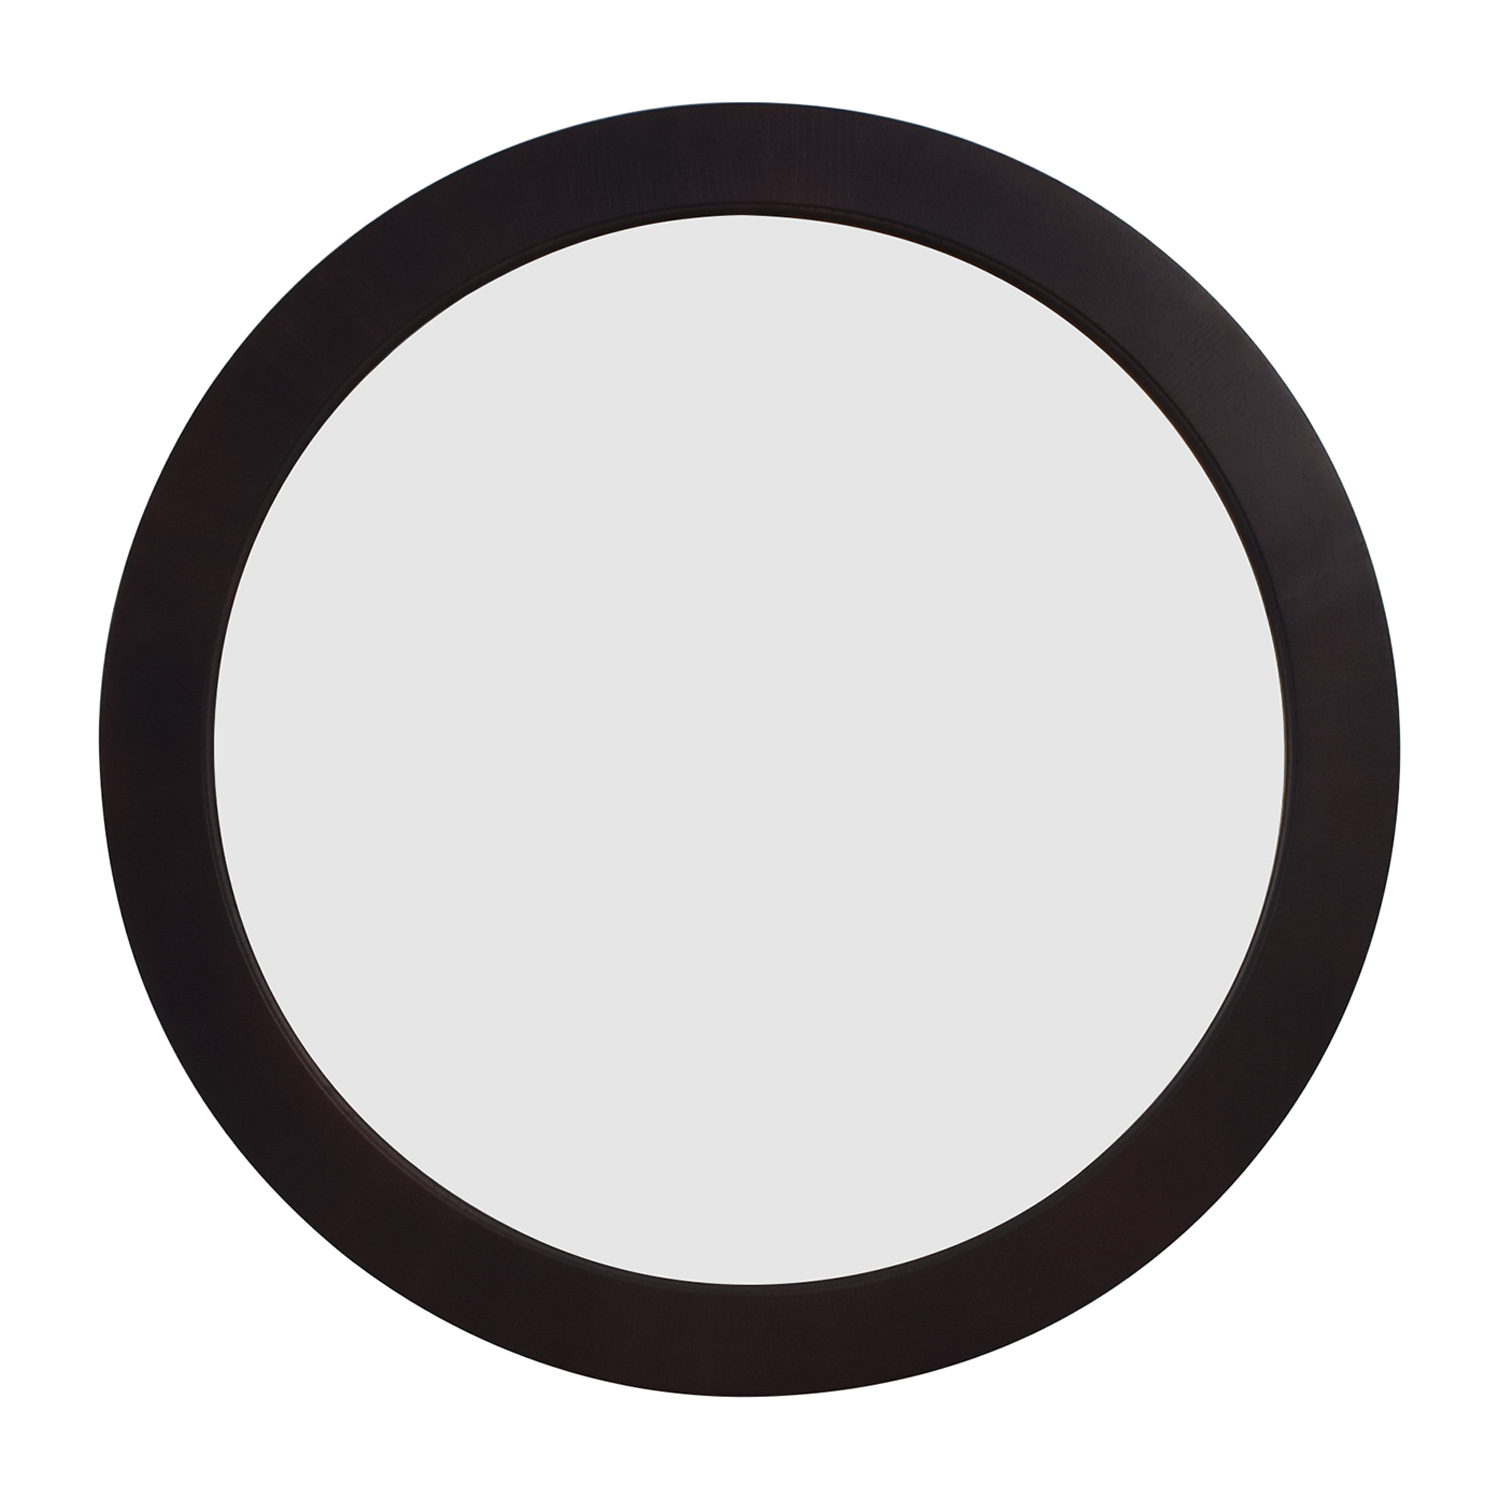 buy Ethan Allen Horizons Oval Wall Mirror Ethan Allen Mirrors